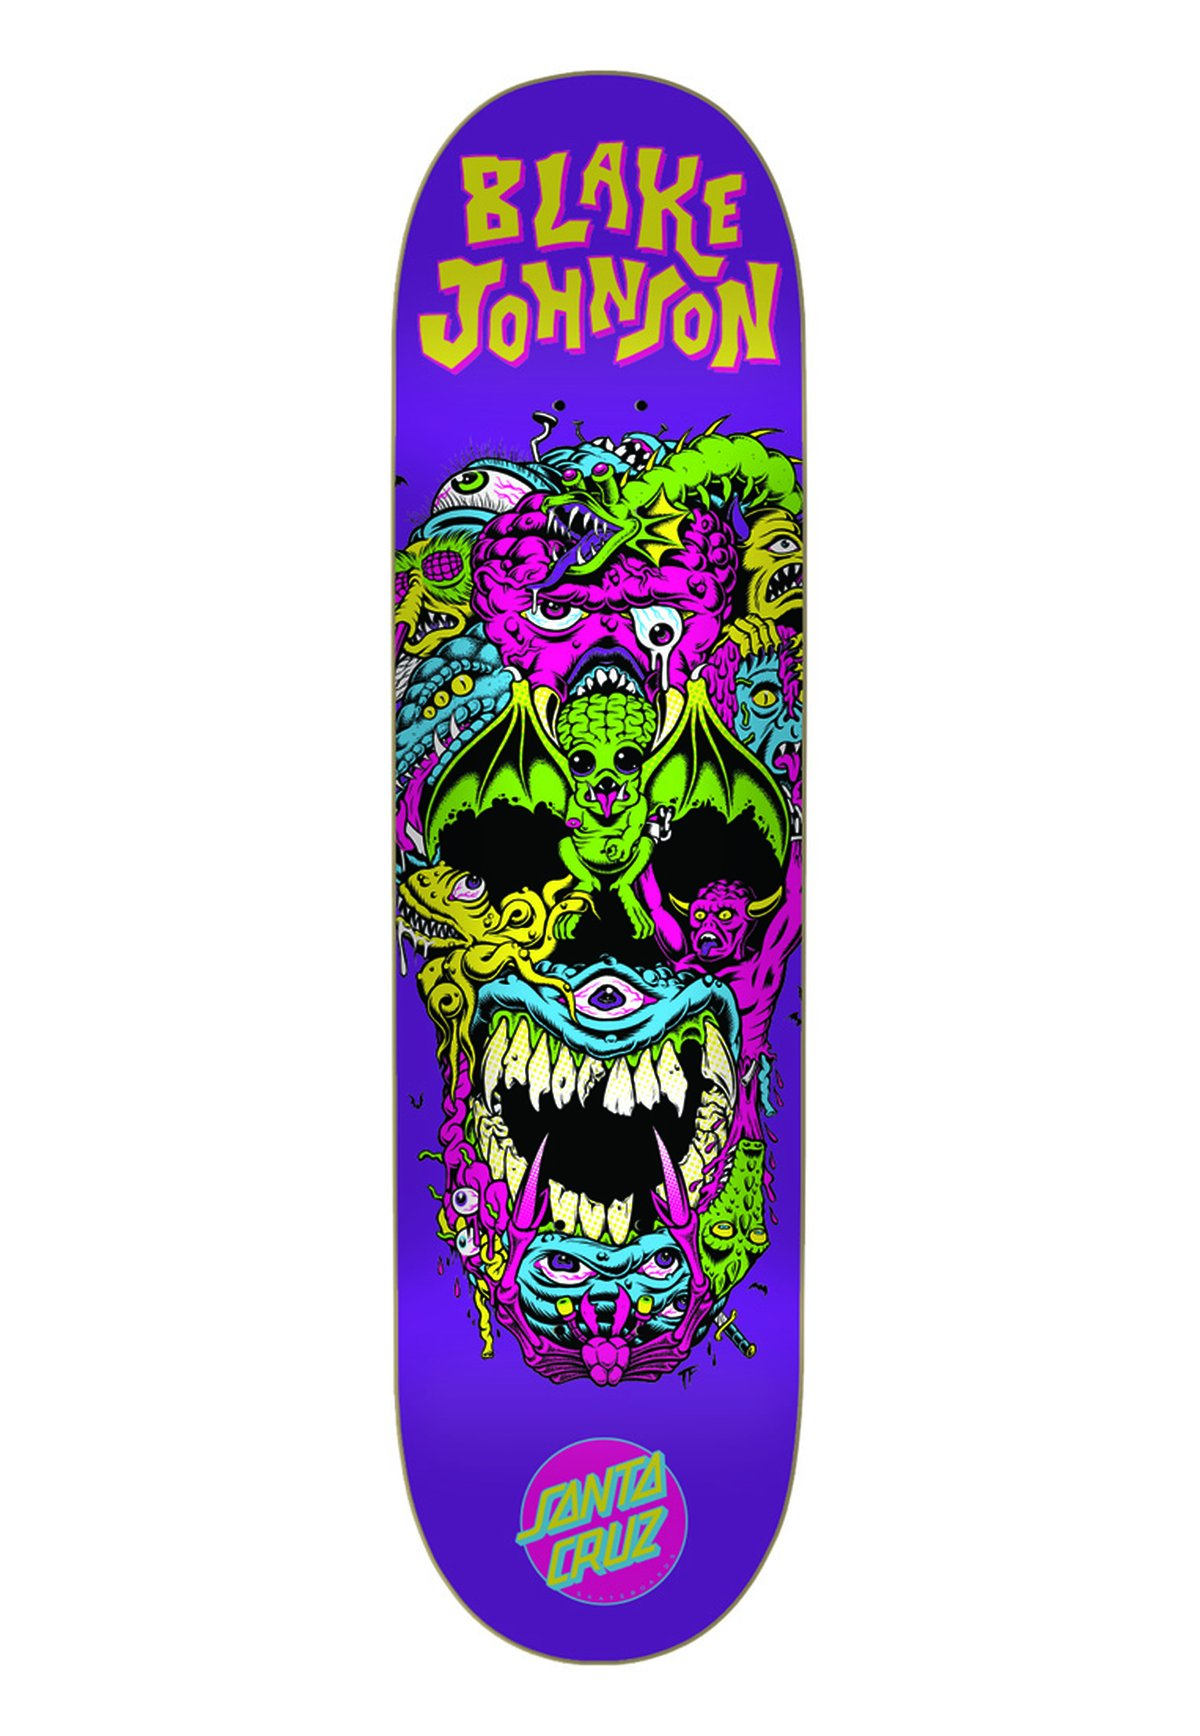 SHAPE SANTA CRUZ JOHNSON RAD SKULL 8.6